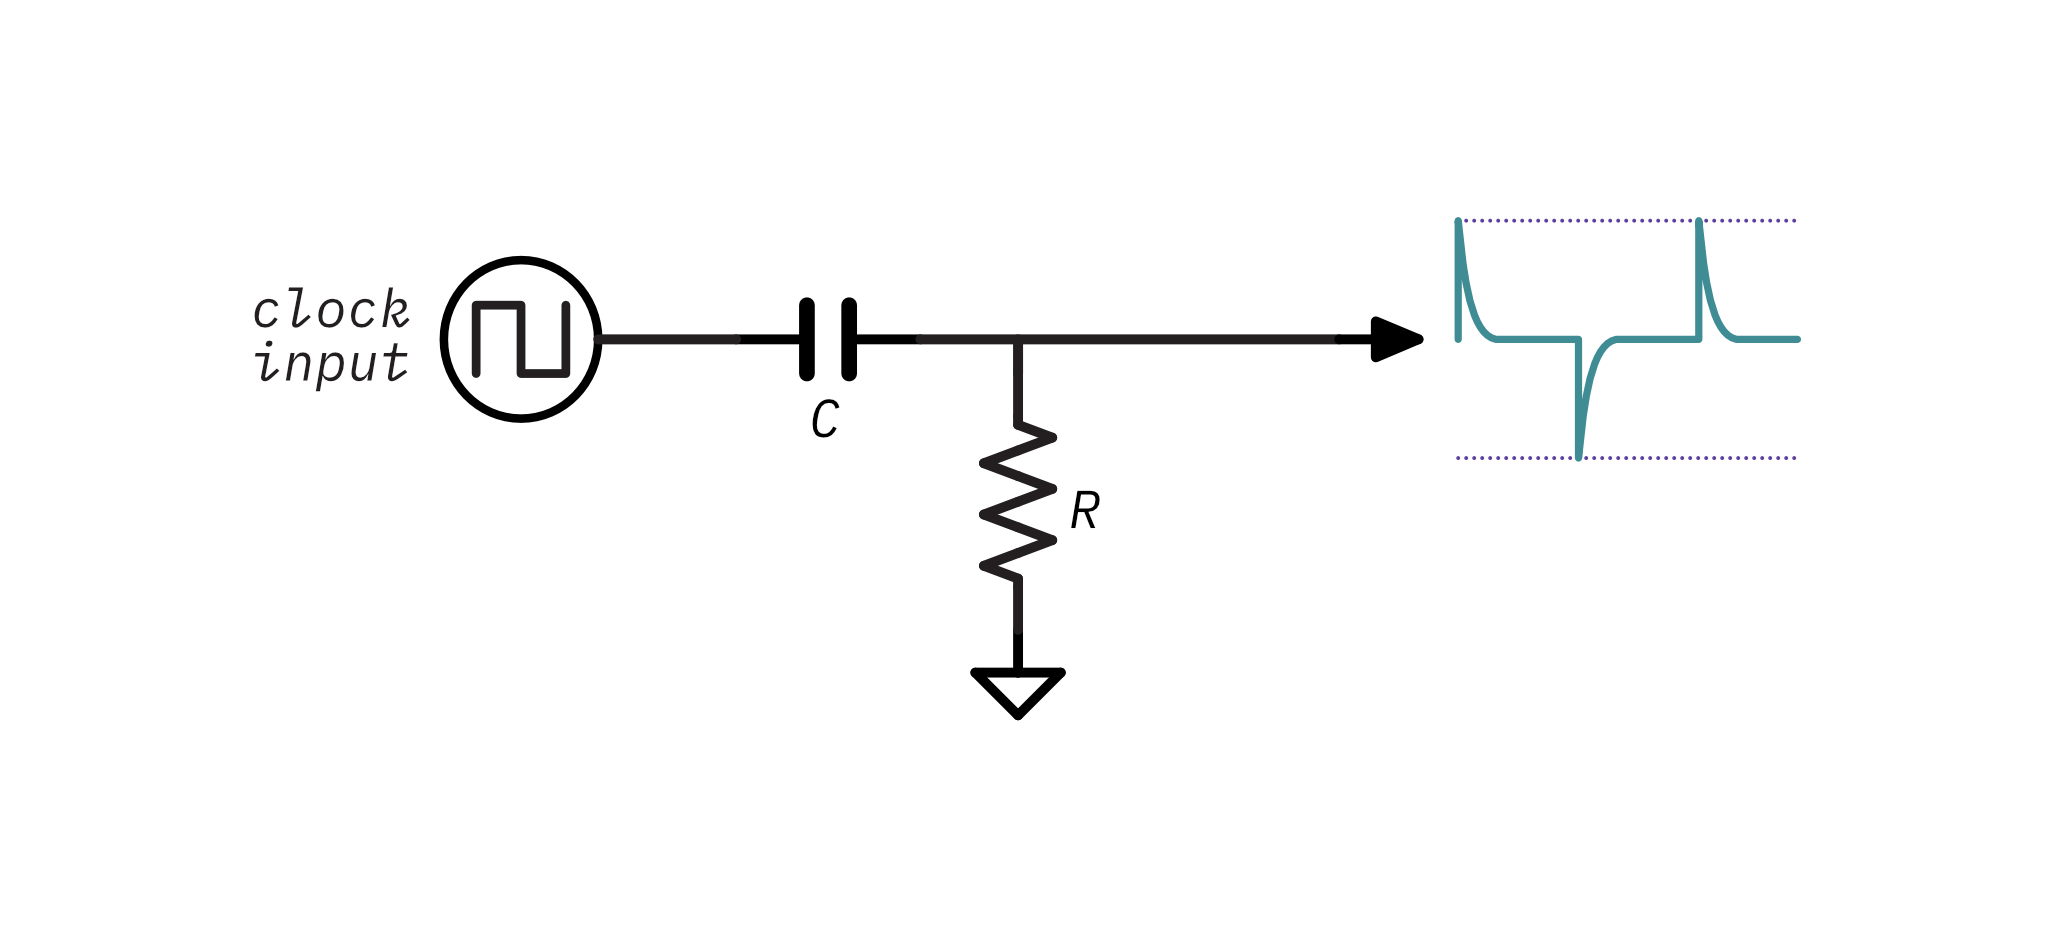 A schematic showing an RC differentiator transforming a clock signal into spikes